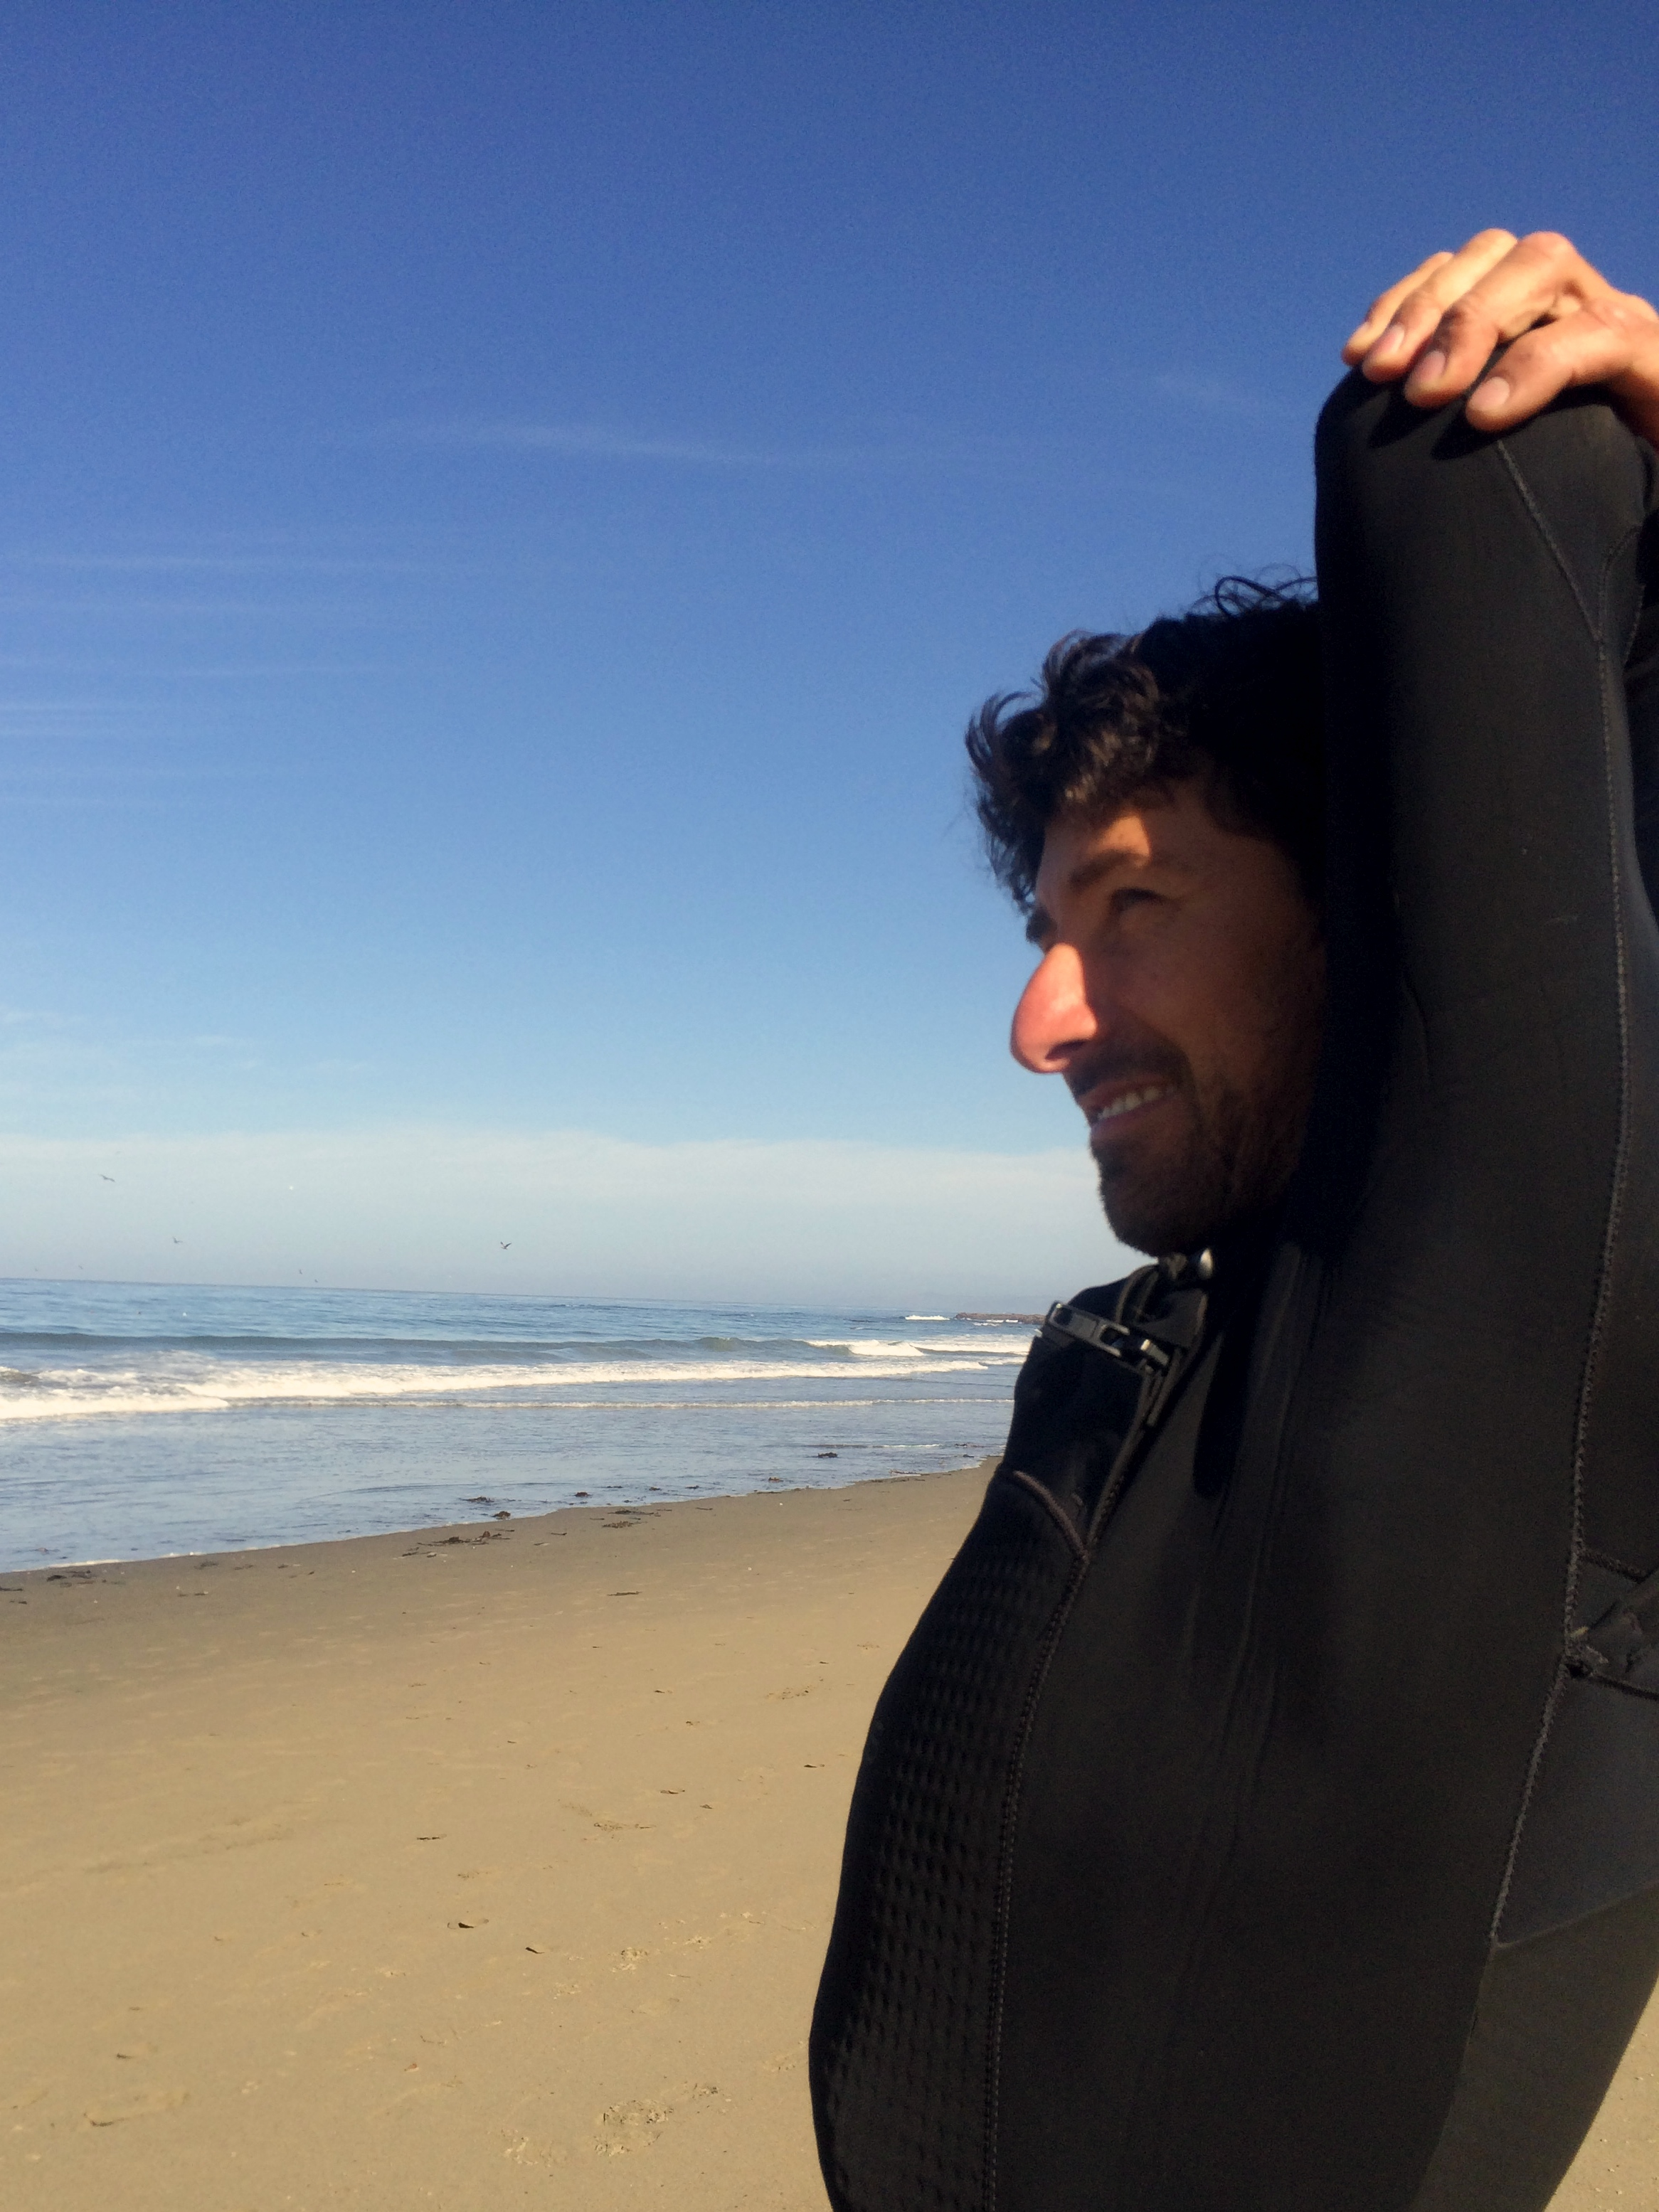 I love taking pre-surfing photos--The Check, the wetsuit-donning squirm, sunscreening, stretching. It reminds me a little of Degas's behind-the scenes dancer paintings.